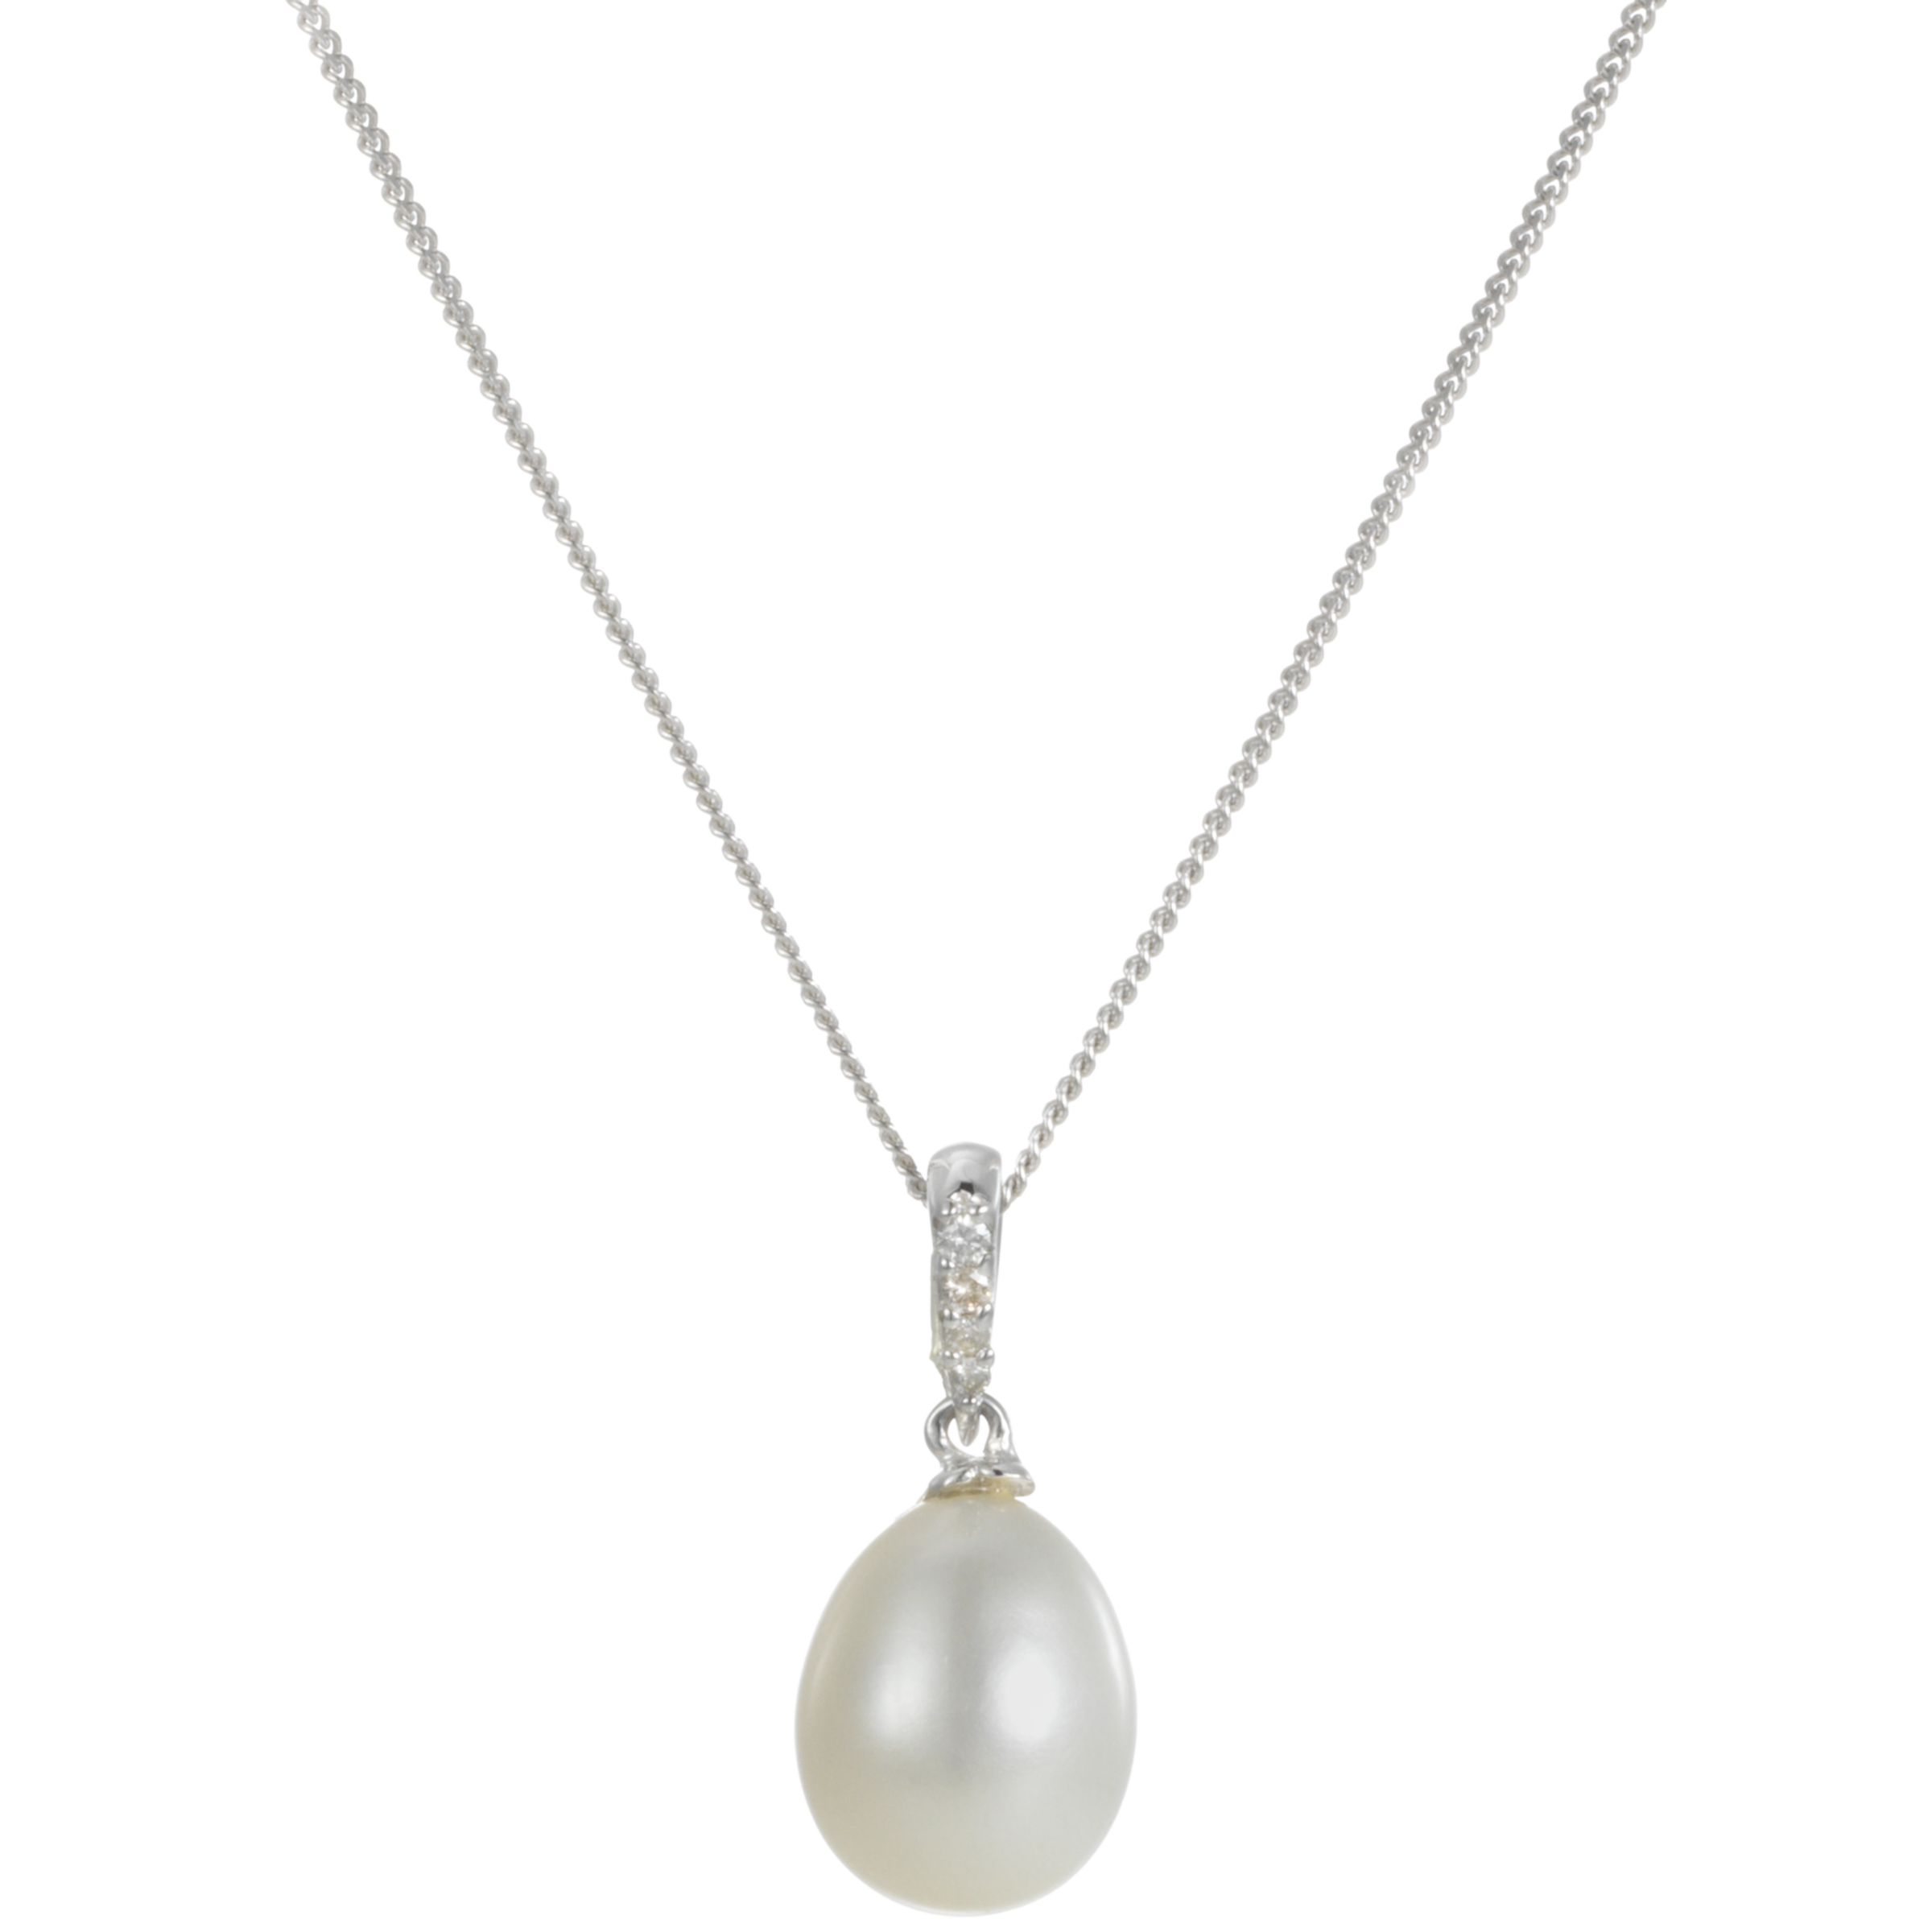 9ct White Gold Freshwater Pearl and Diamond Pendant Necklace